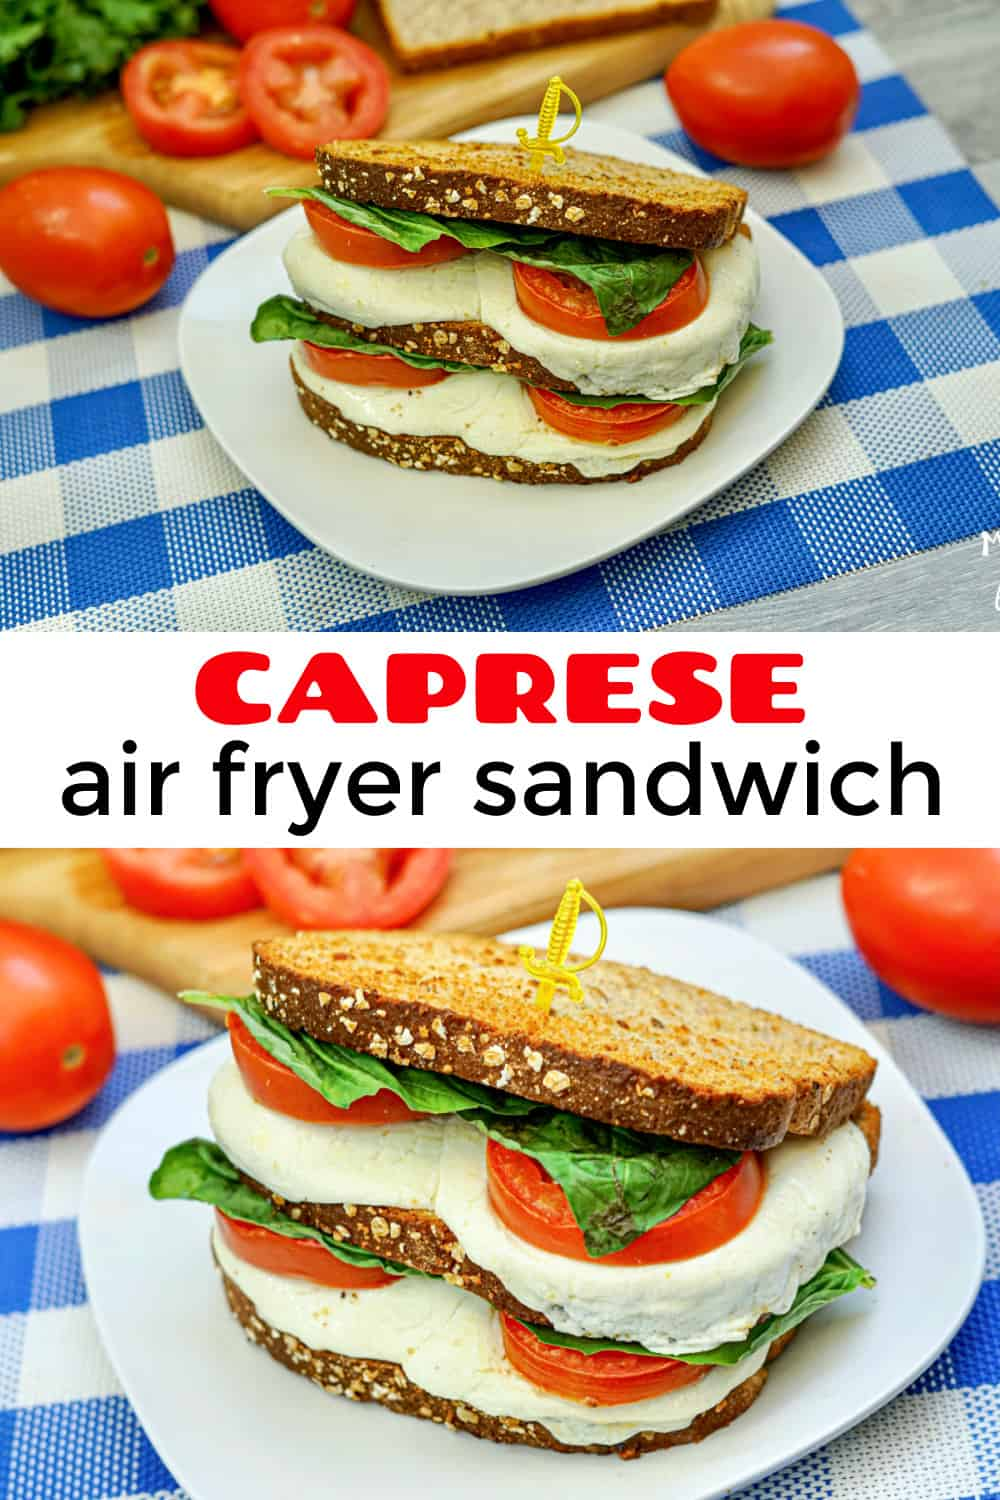 Caprese Air Fryer Sandwich